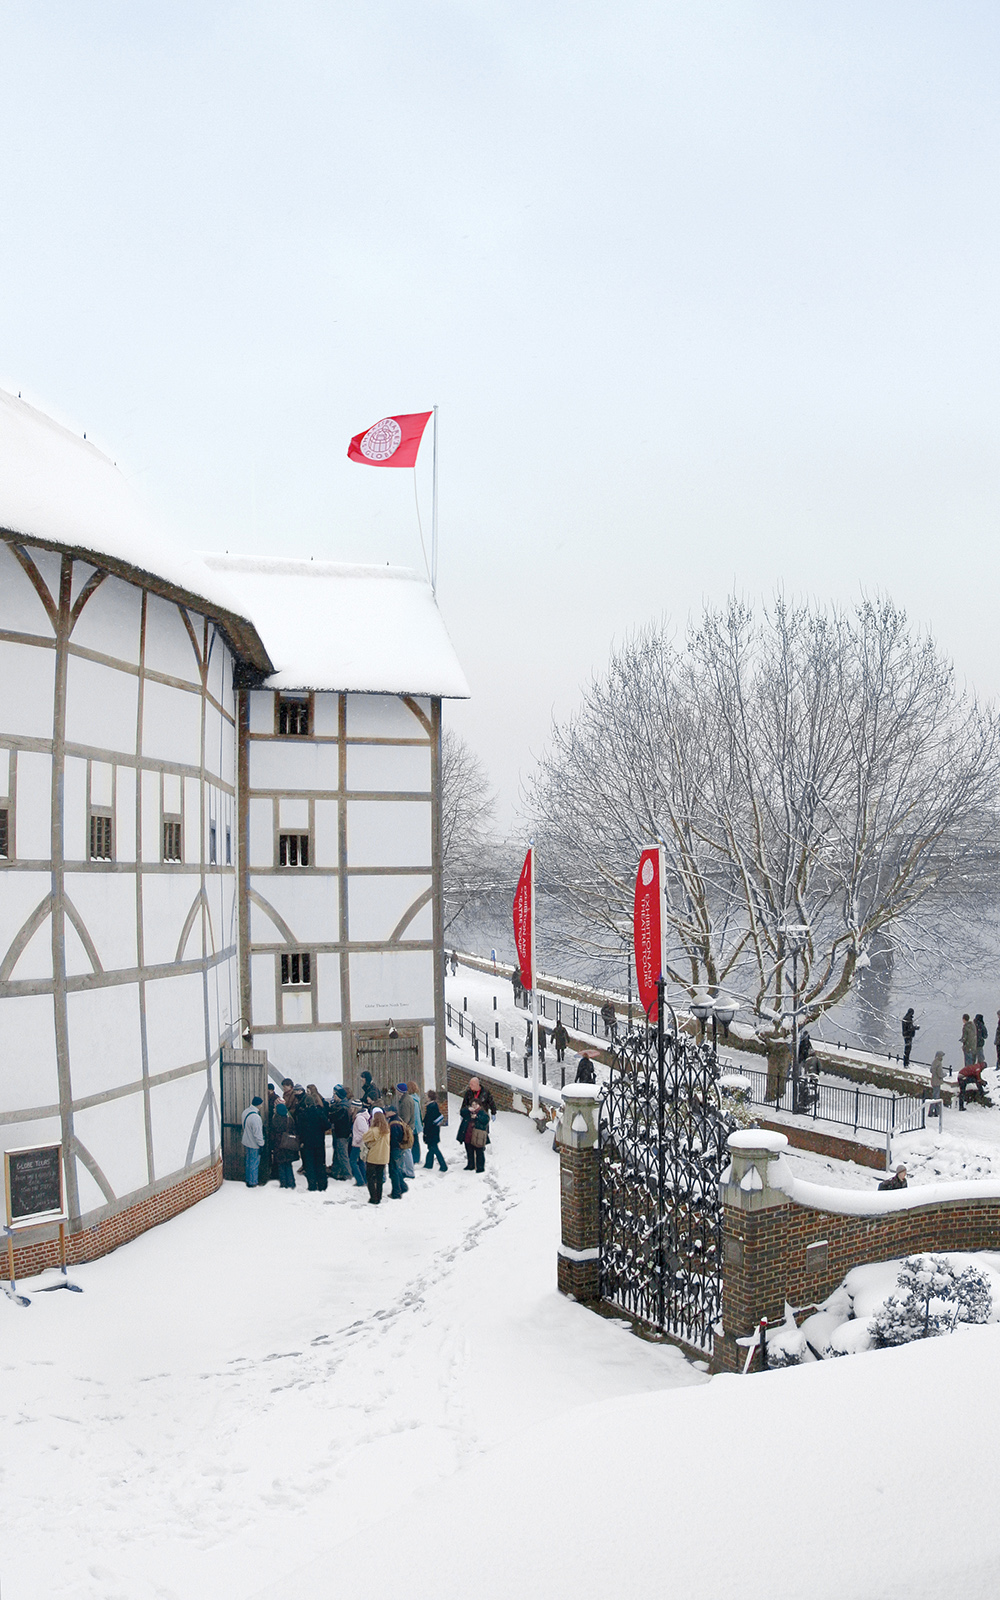 A snowy view of the white circular timber structure theatre, with the bank of the River Thames infront